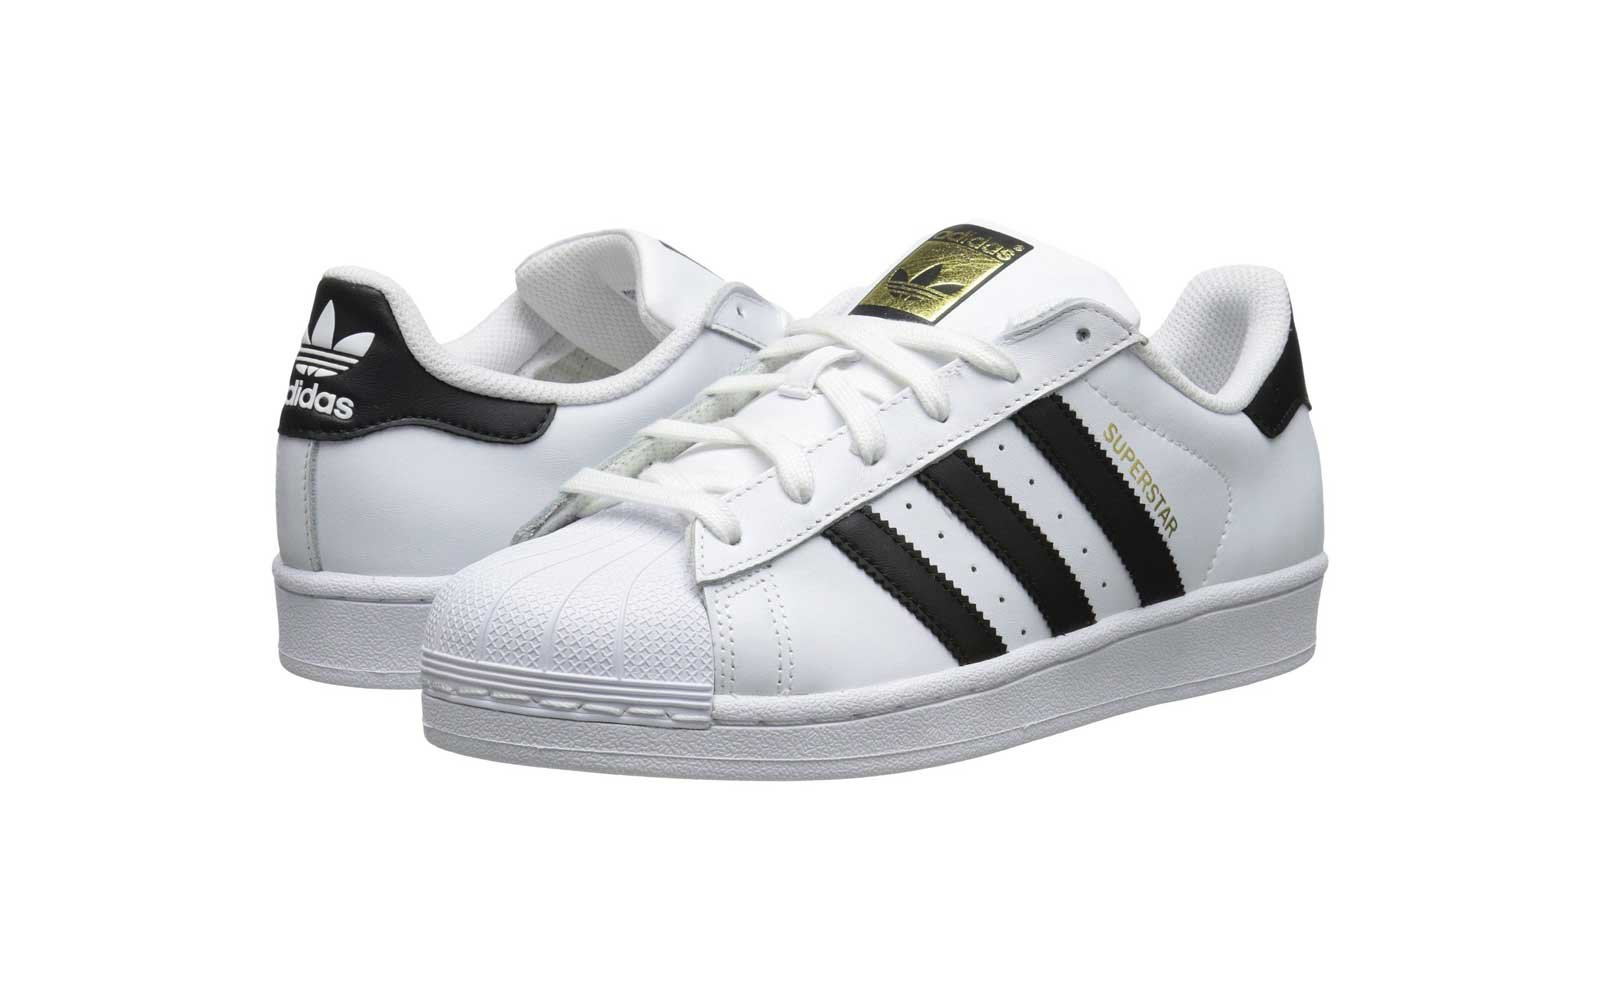 3905963e7 For the All-star  Adidas Originals Superstar. The Best Comfy and Cute  Sneakers